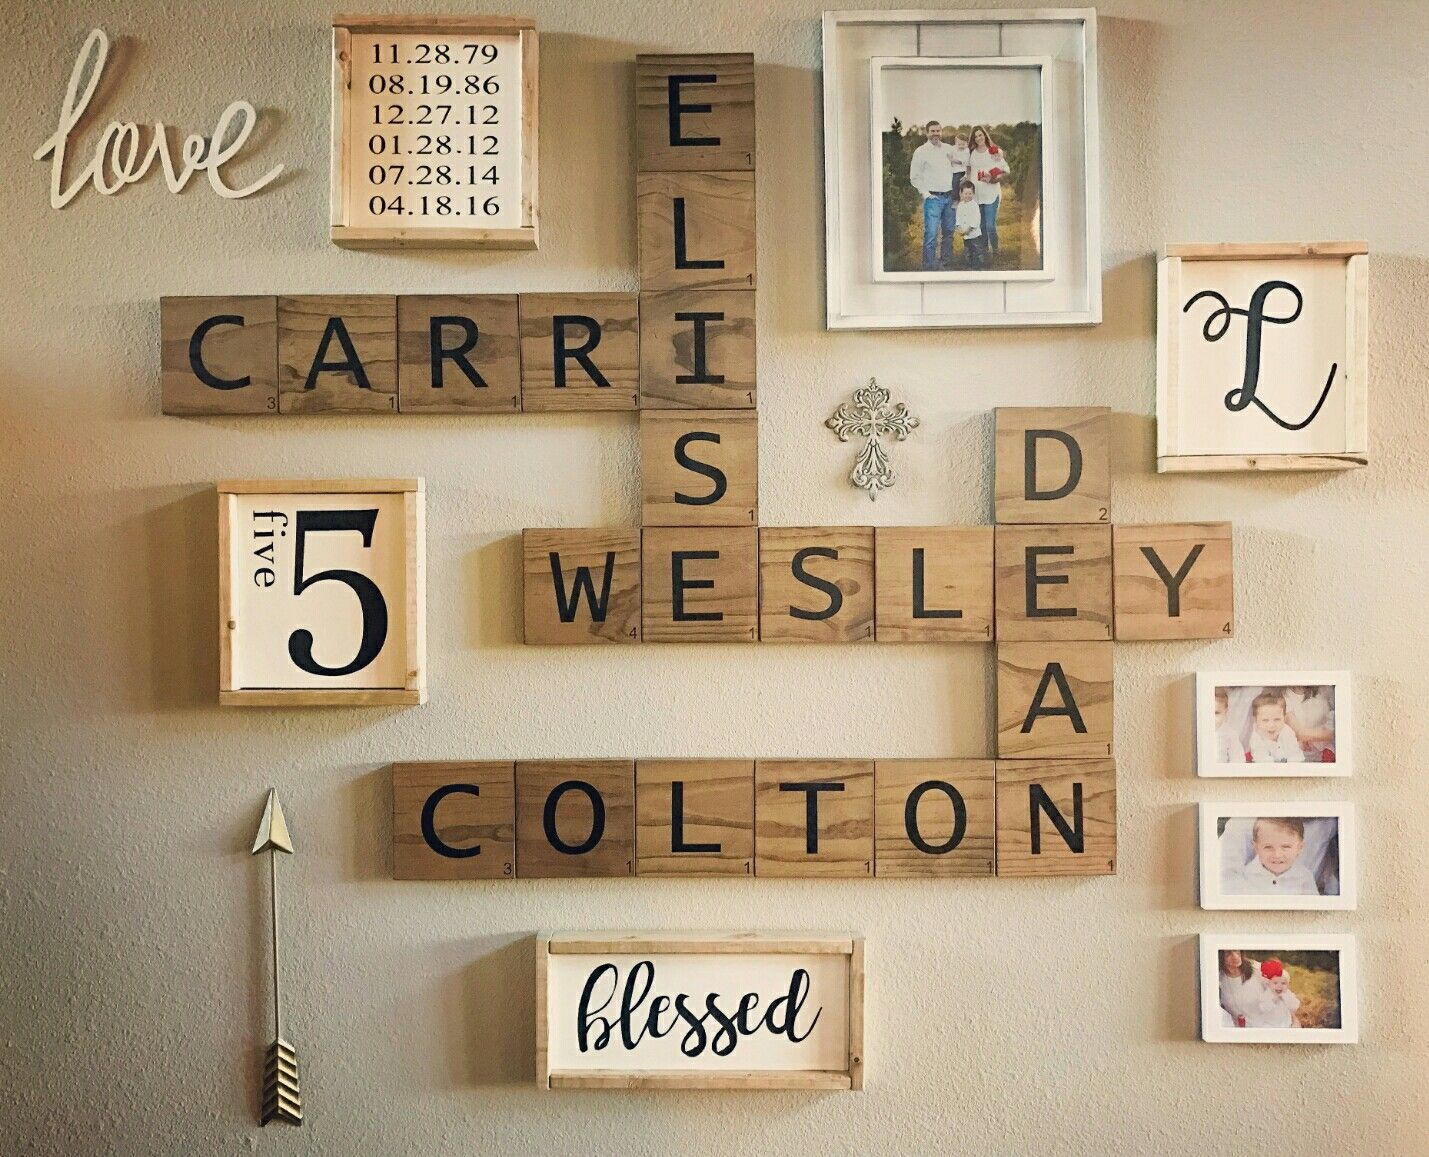 My kitchen gallery wall all decor from hobby lobby and ross a customer shared her completed gallery wall with the custom signs from the shop number amipublicfo Images